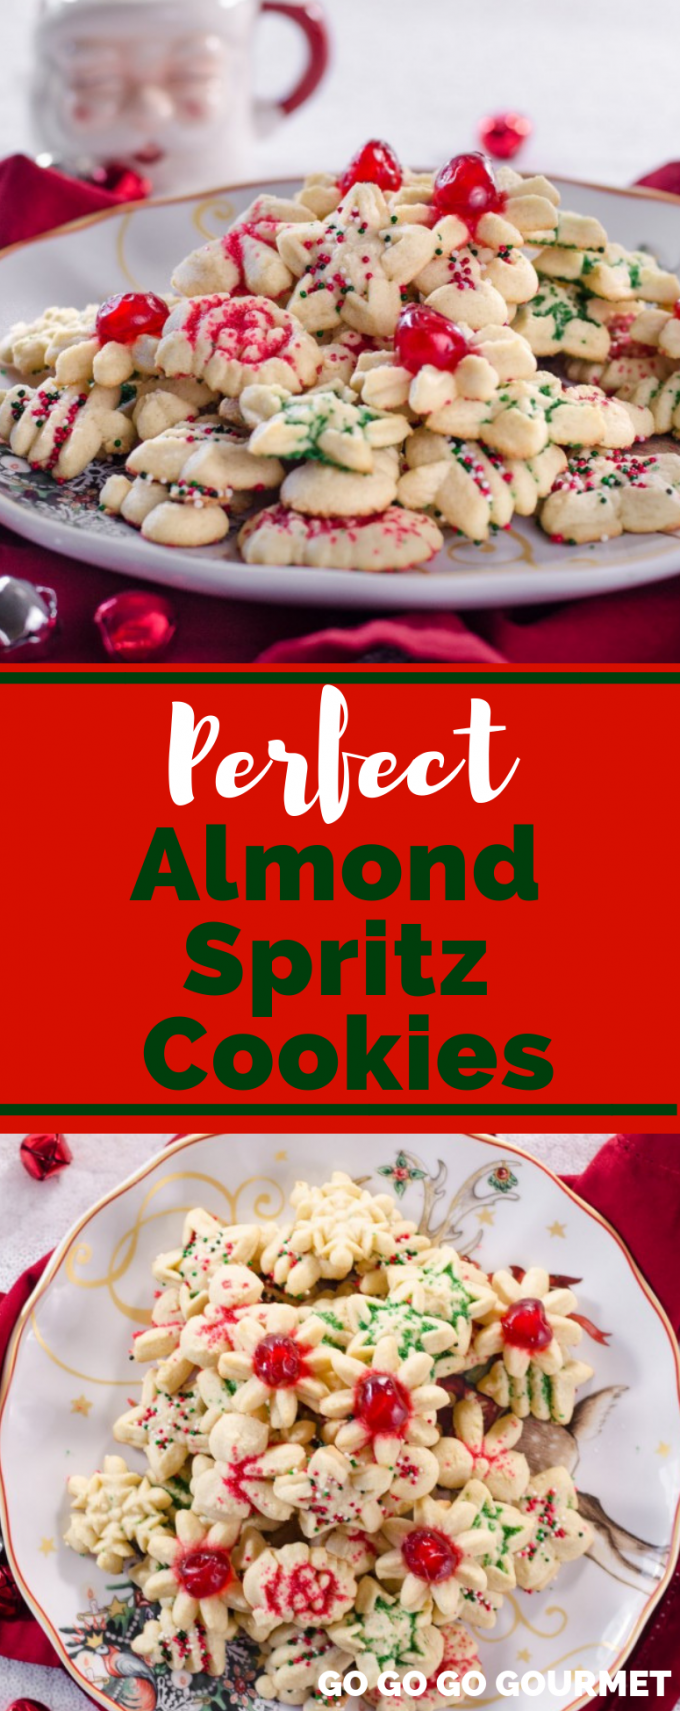 If you're looking for the best Christmas cookie recipes, this is the perfect Almond Spritz Cookies recipe! Ideal for the holidays with fun shapes, it will be one of your favorite desserts! With just a few simple ingredients like butter and eggs, you will enjoy baking these cute cookies. Move over Taste of Home, there's a new holiday cookie in town! #gogogogourmet #almondspritzcookies #christmascookierecipes #christmascookieideas via @gogogogourmet